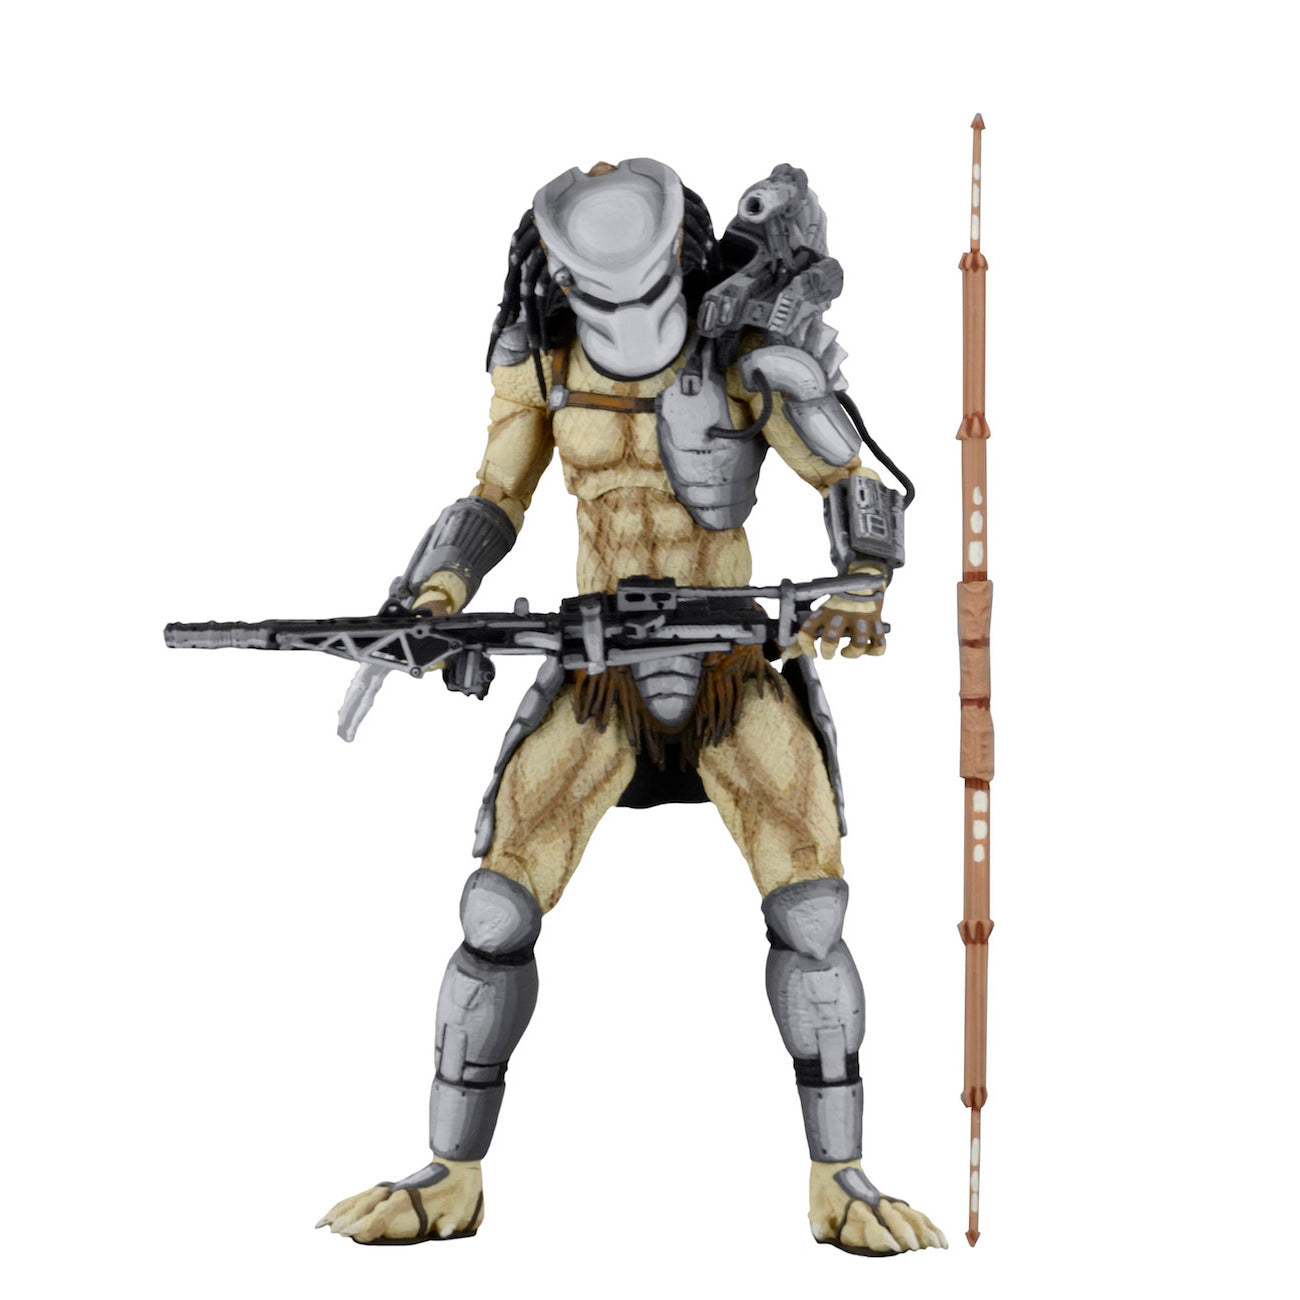 Alien vs. Predator Warrior Predator 7 inch Scale Action Figure